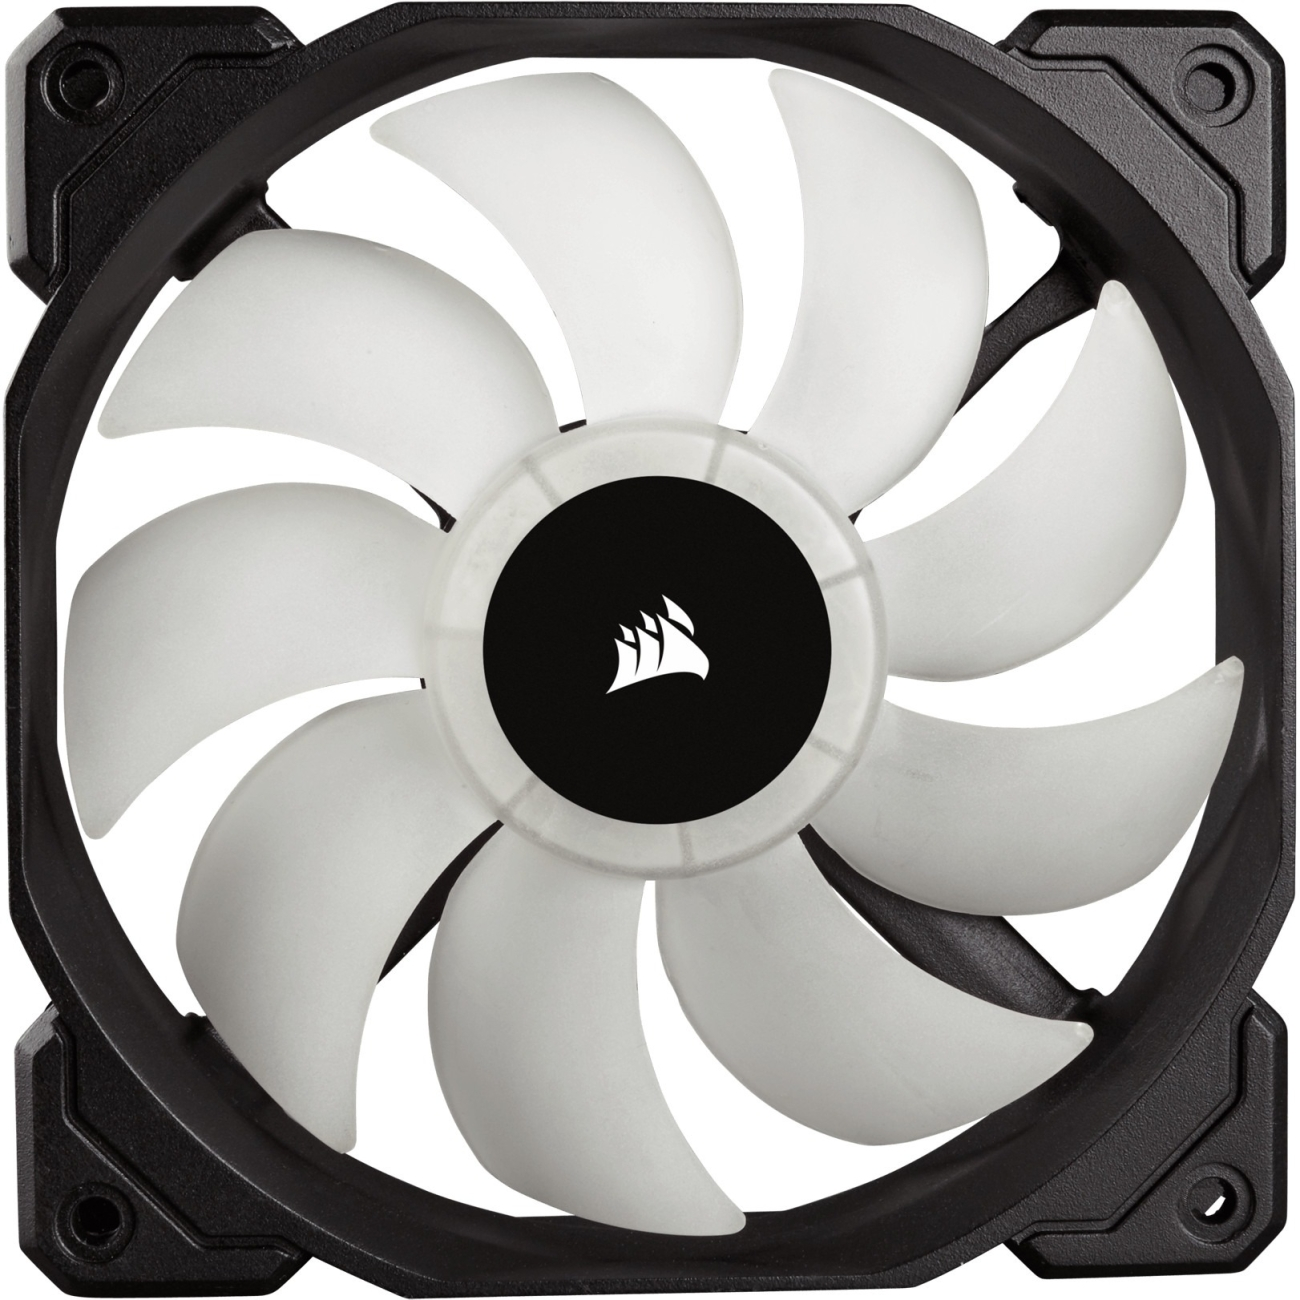 CORSAIR SP Series, SP120 RGB LED, 120mm High Performance RGB LED three fans with controller